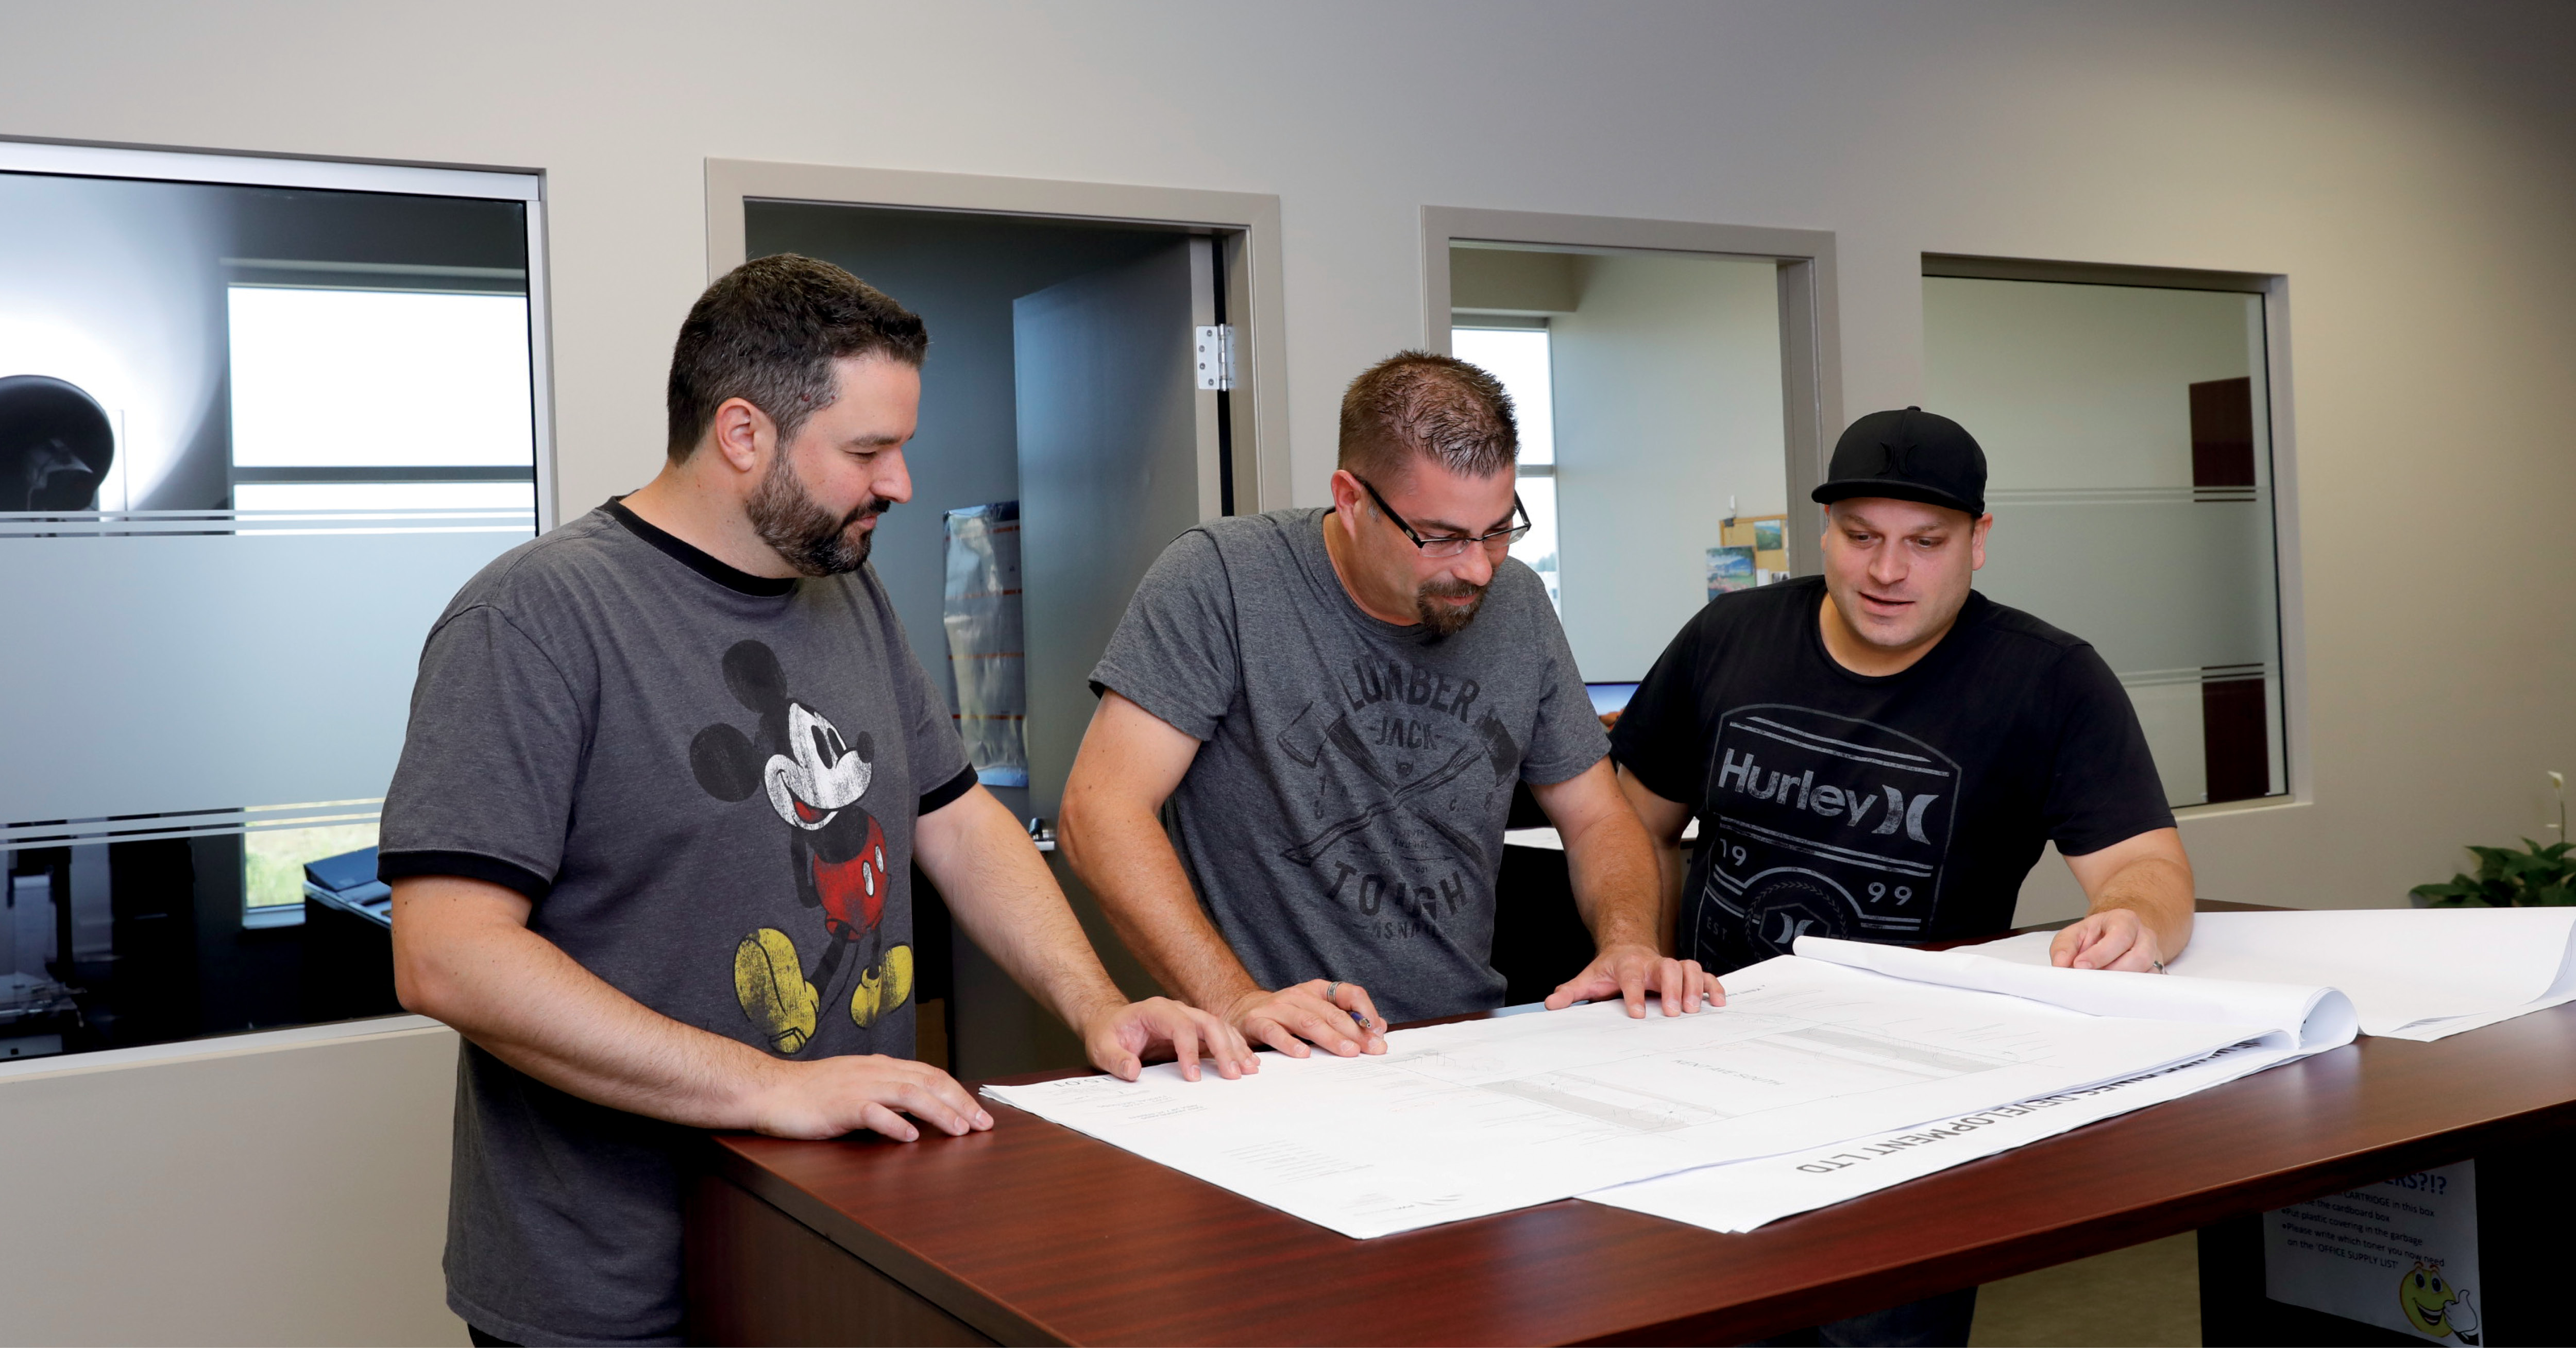 Mike Lalonde reviews landscaping design plans with employees